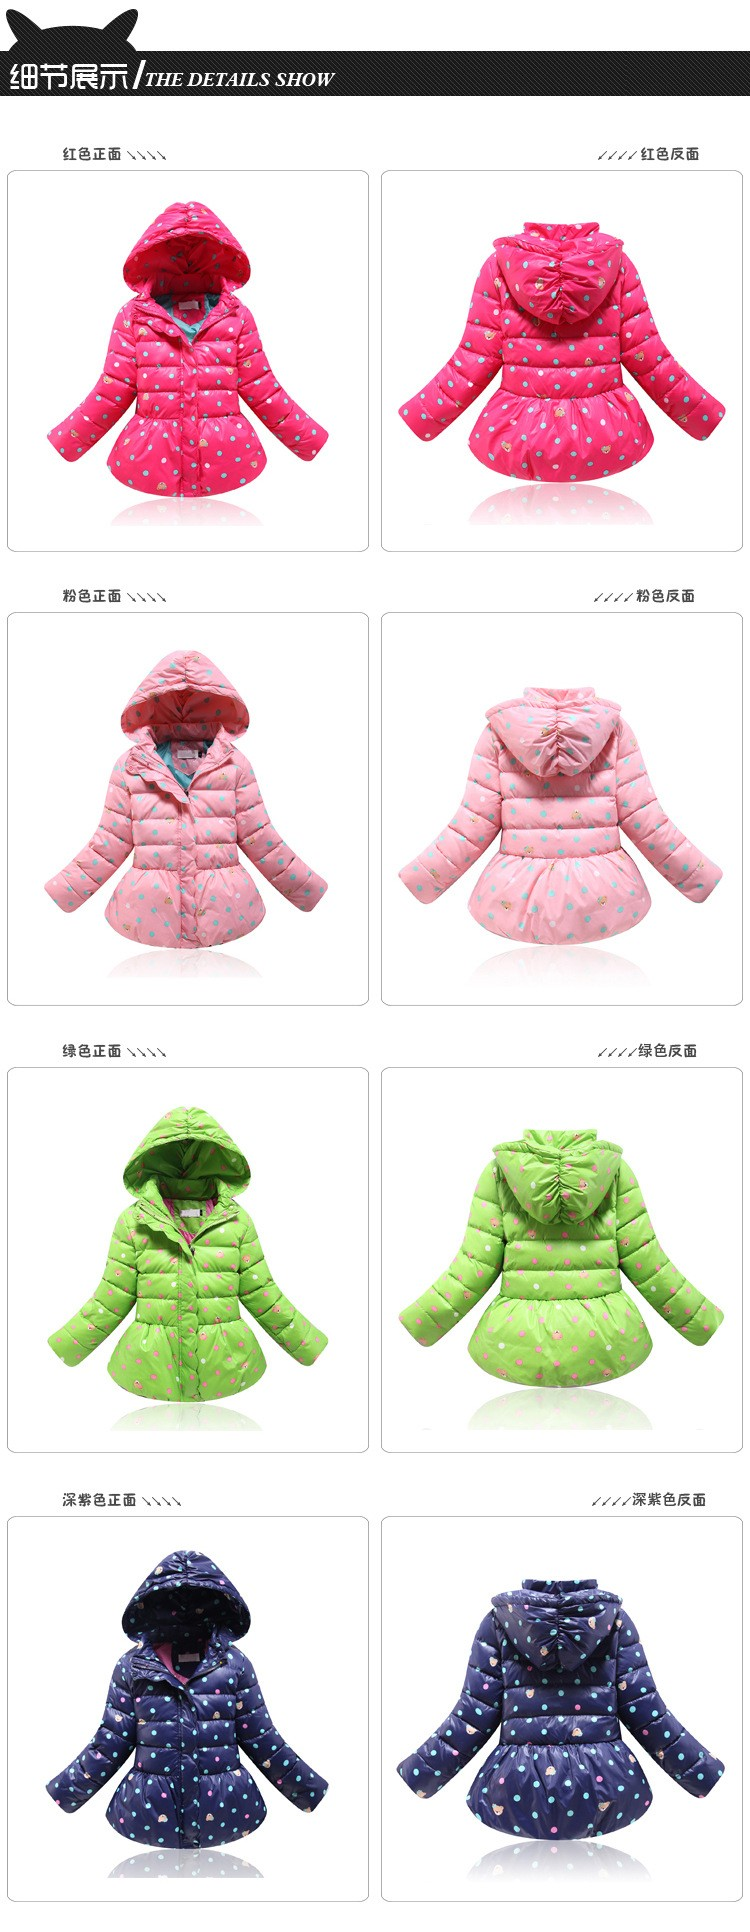 girls winter coats (1)